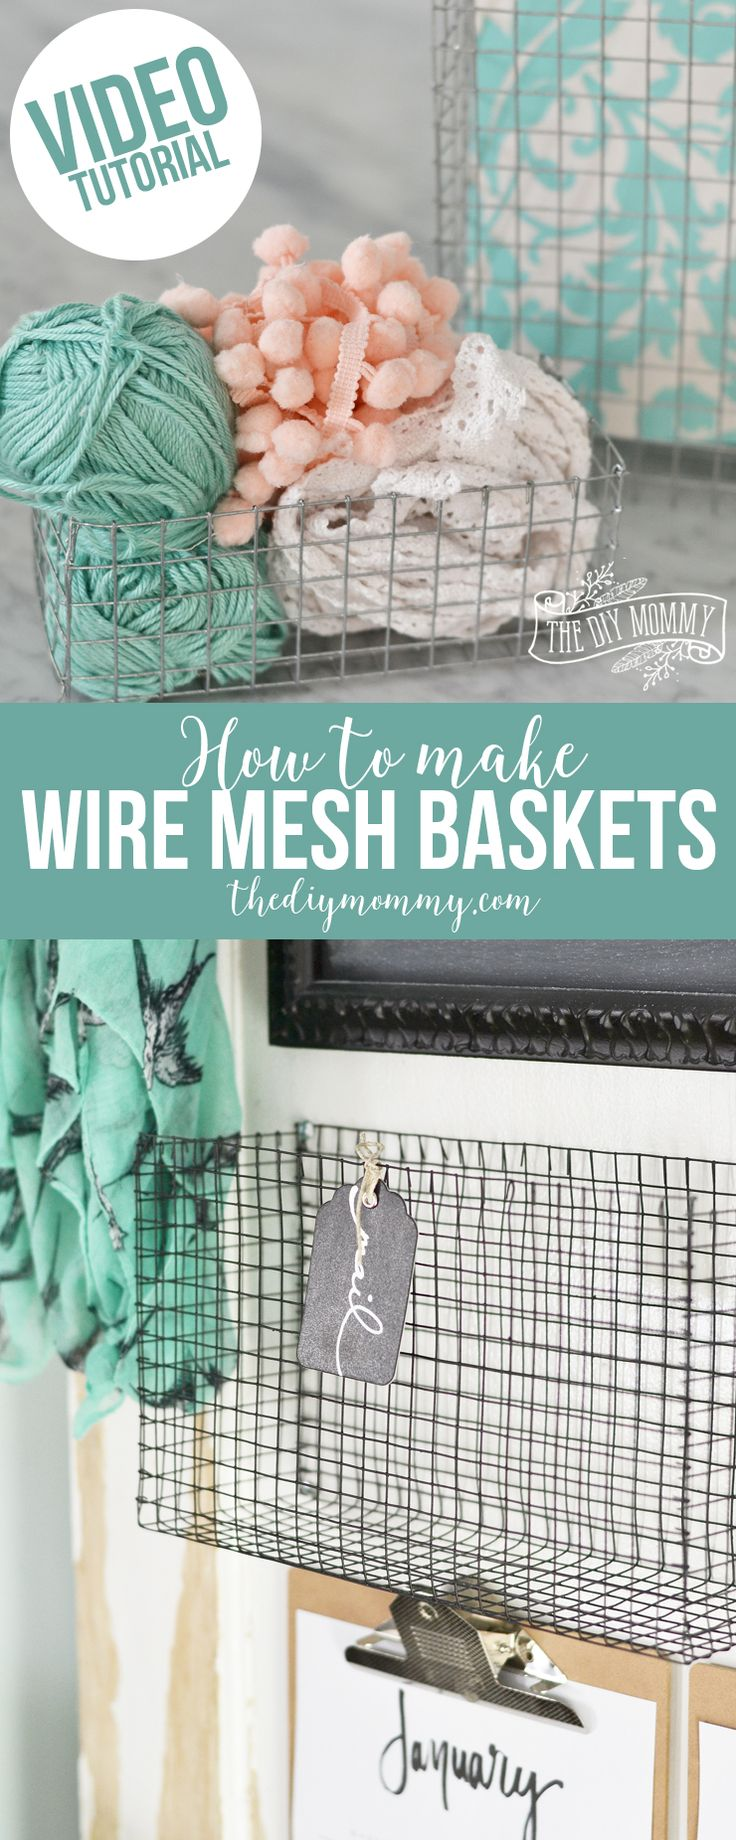 Make Wire Mesh Baskets of Any Size (Video).                   Gloucestershire Resource Centre http://www.grcltd.org/scrapstore/